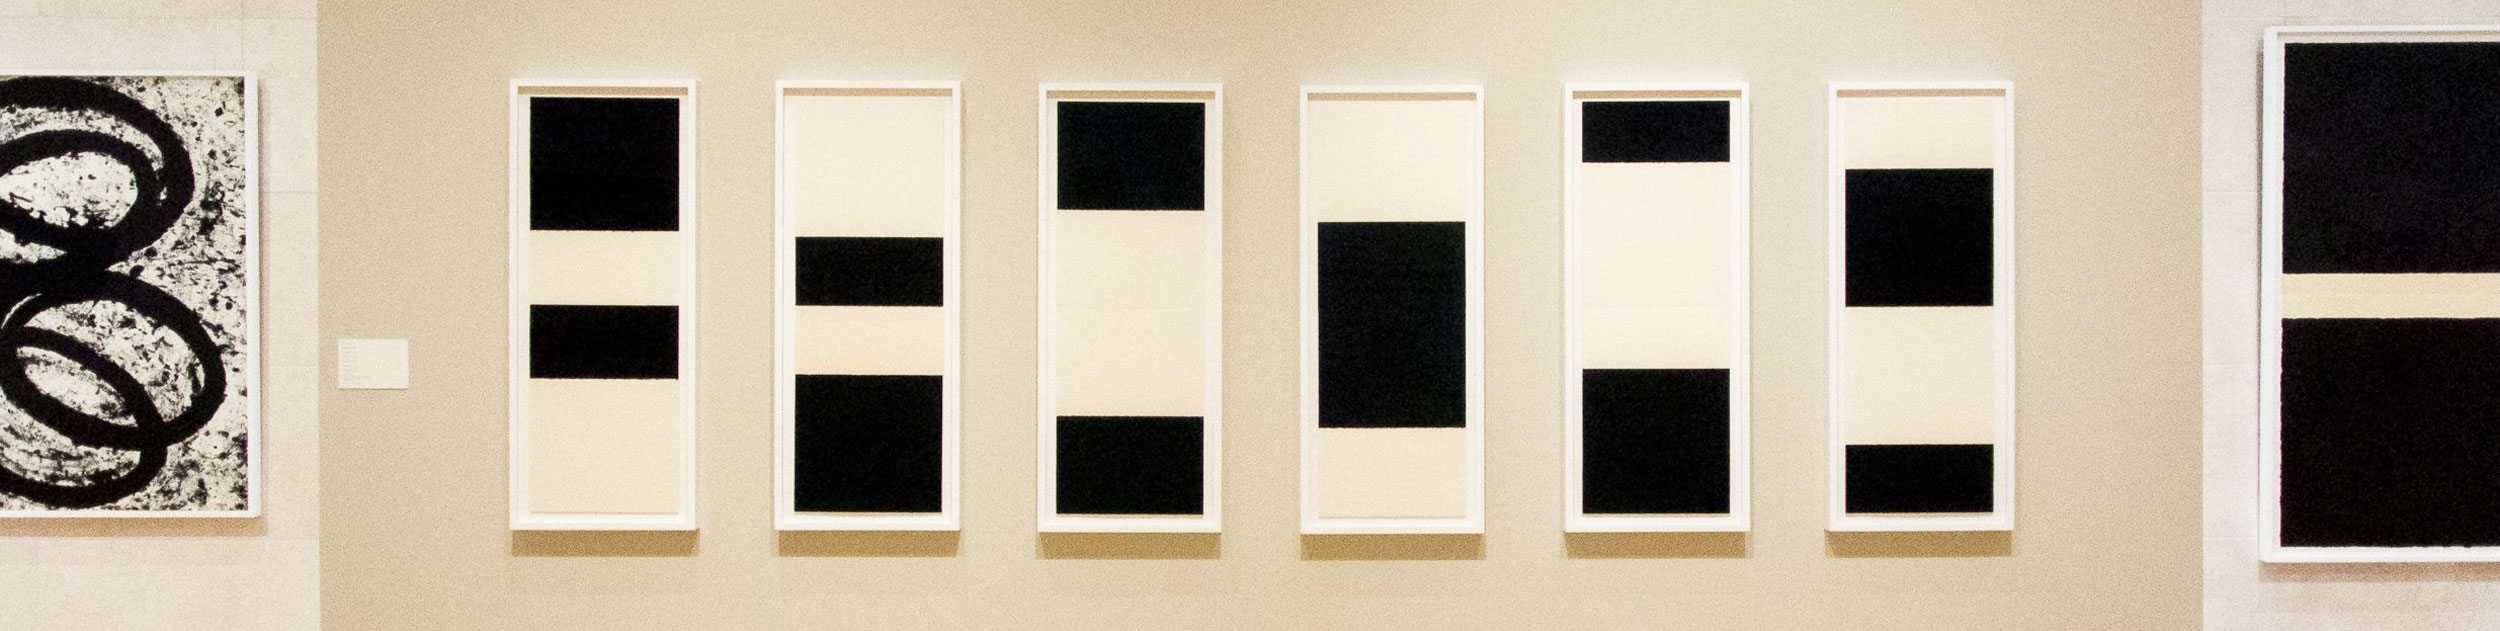 Richard Serra works in black and white hanging on a white gallery wall